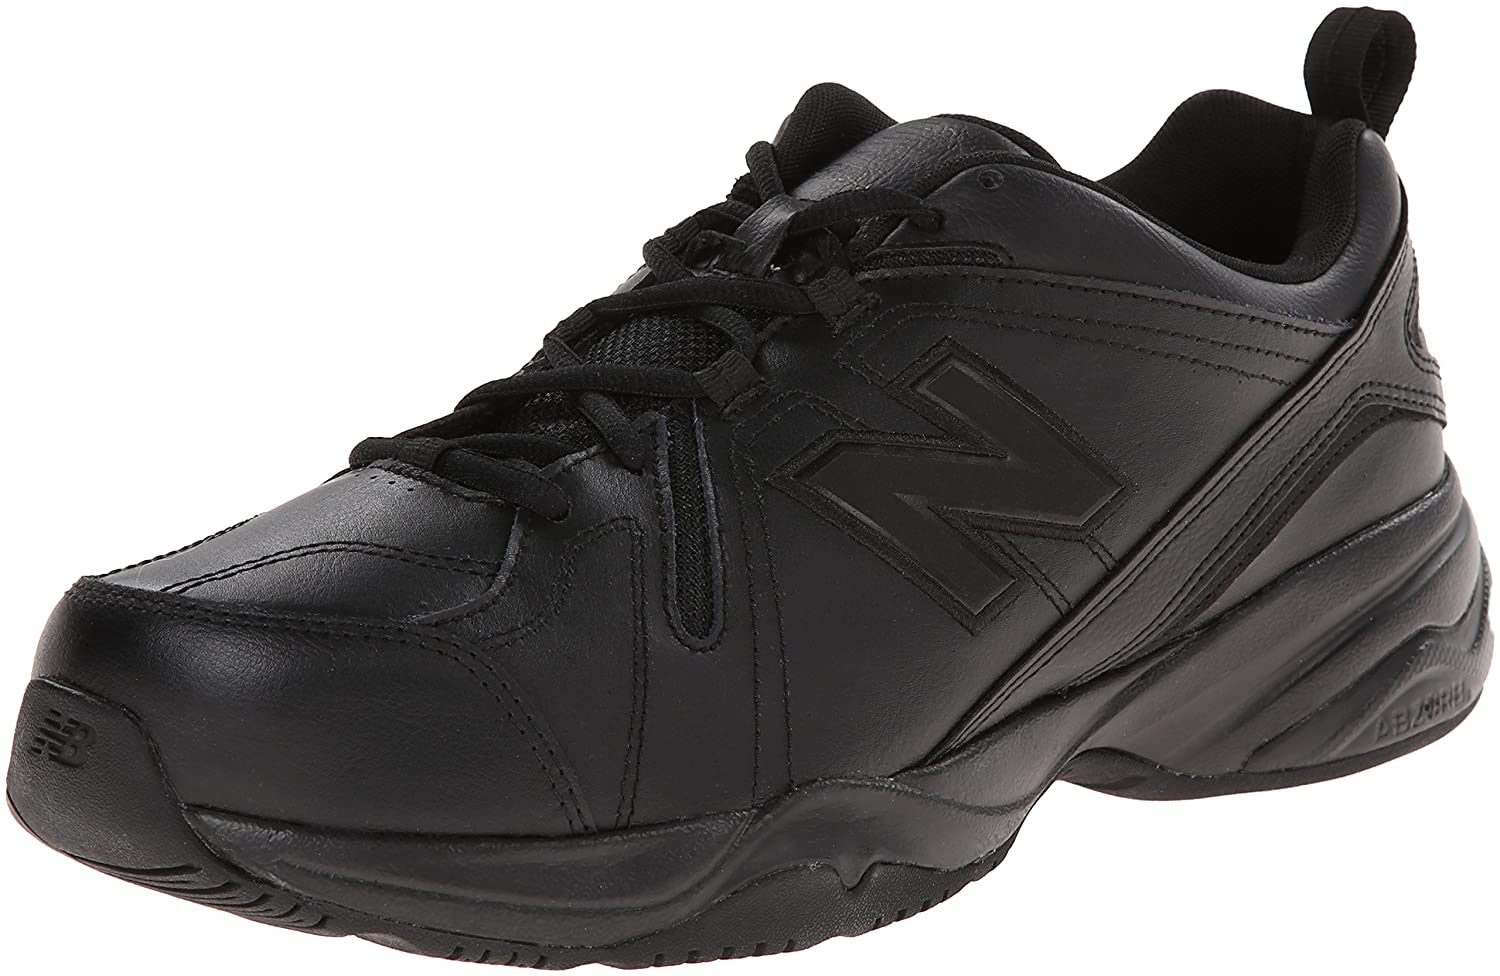 New Balance Men's MX608v4 Training Shoe B00IYATZKE 6.5 4E US|Black